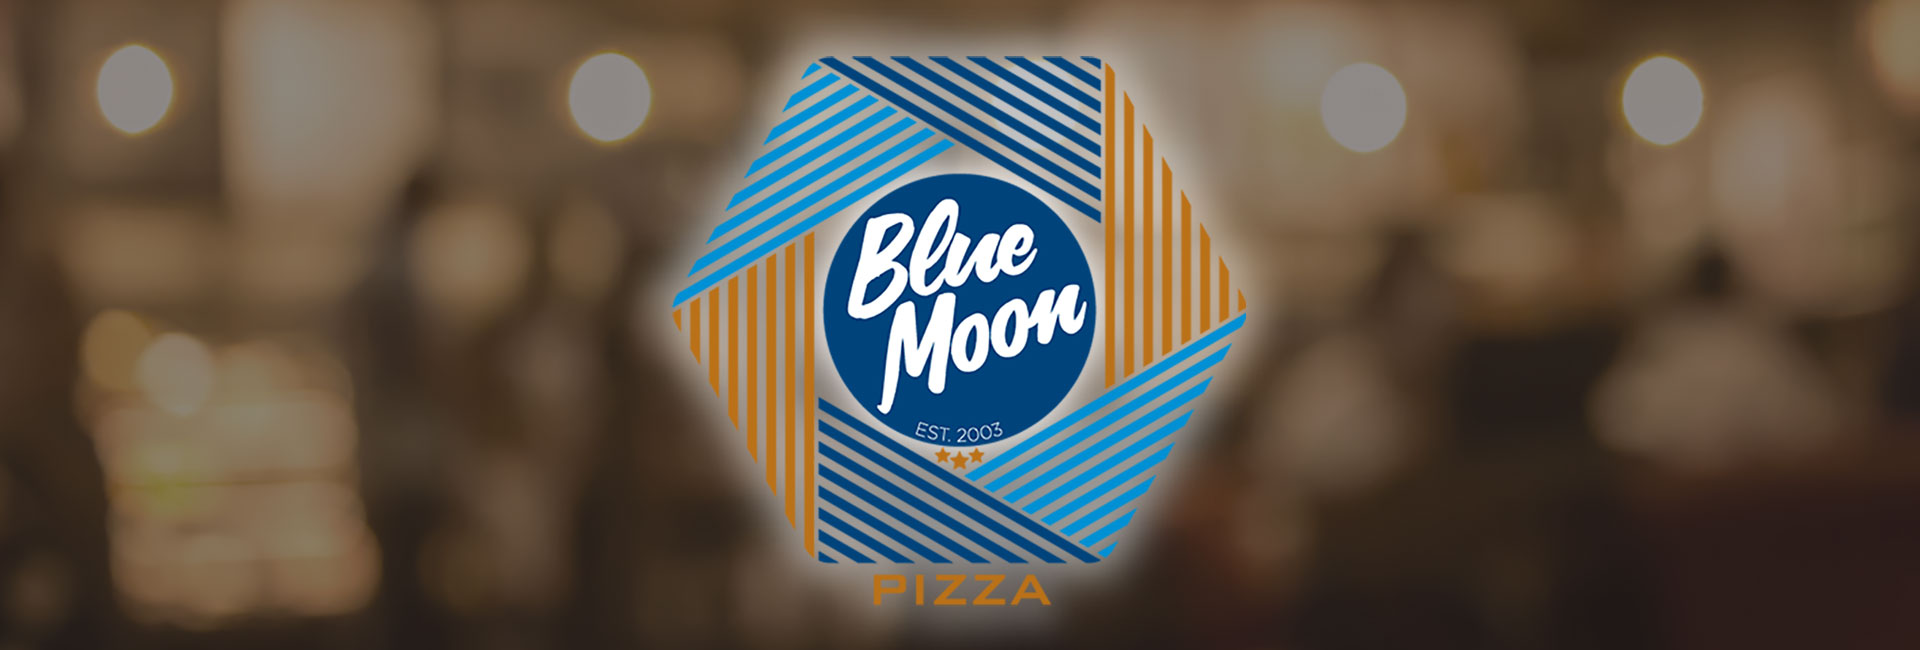 Blue Moon Pizza Catering